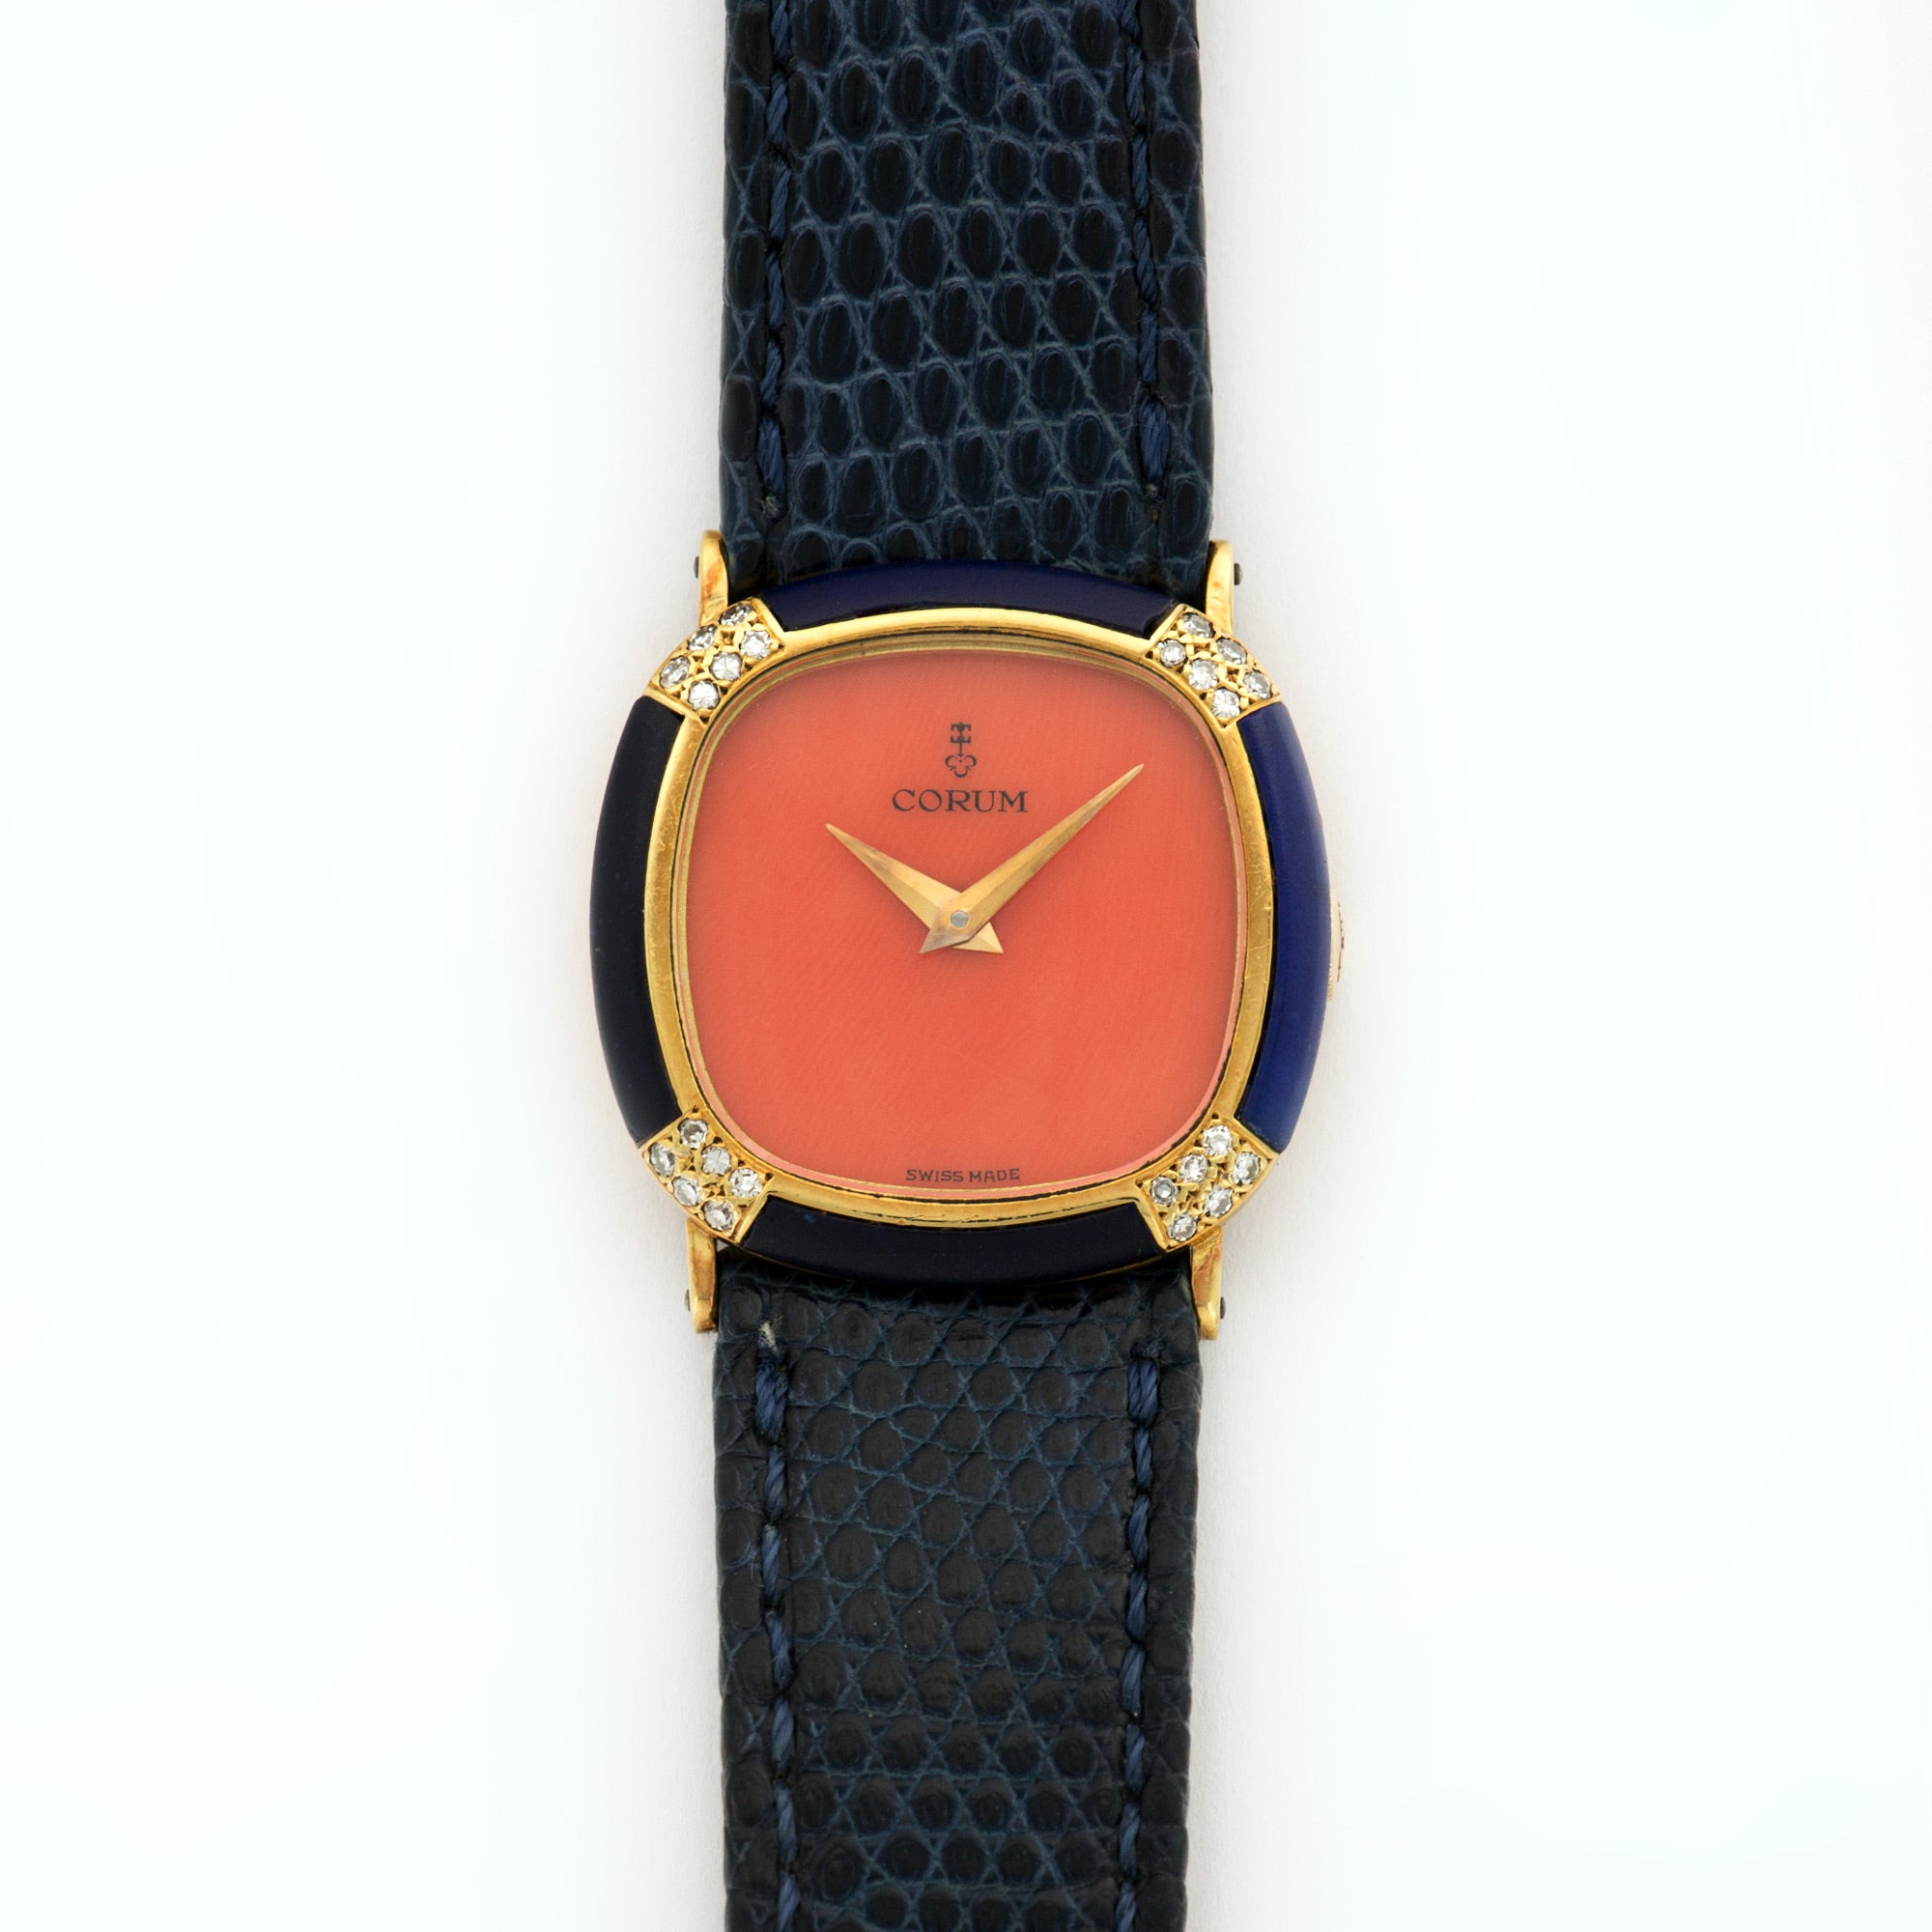 Corum Vintage N/A 18k YG  Excellent Ladies 18k YG Coral 25mm Manual 1970s Dark Blue Strap N/A